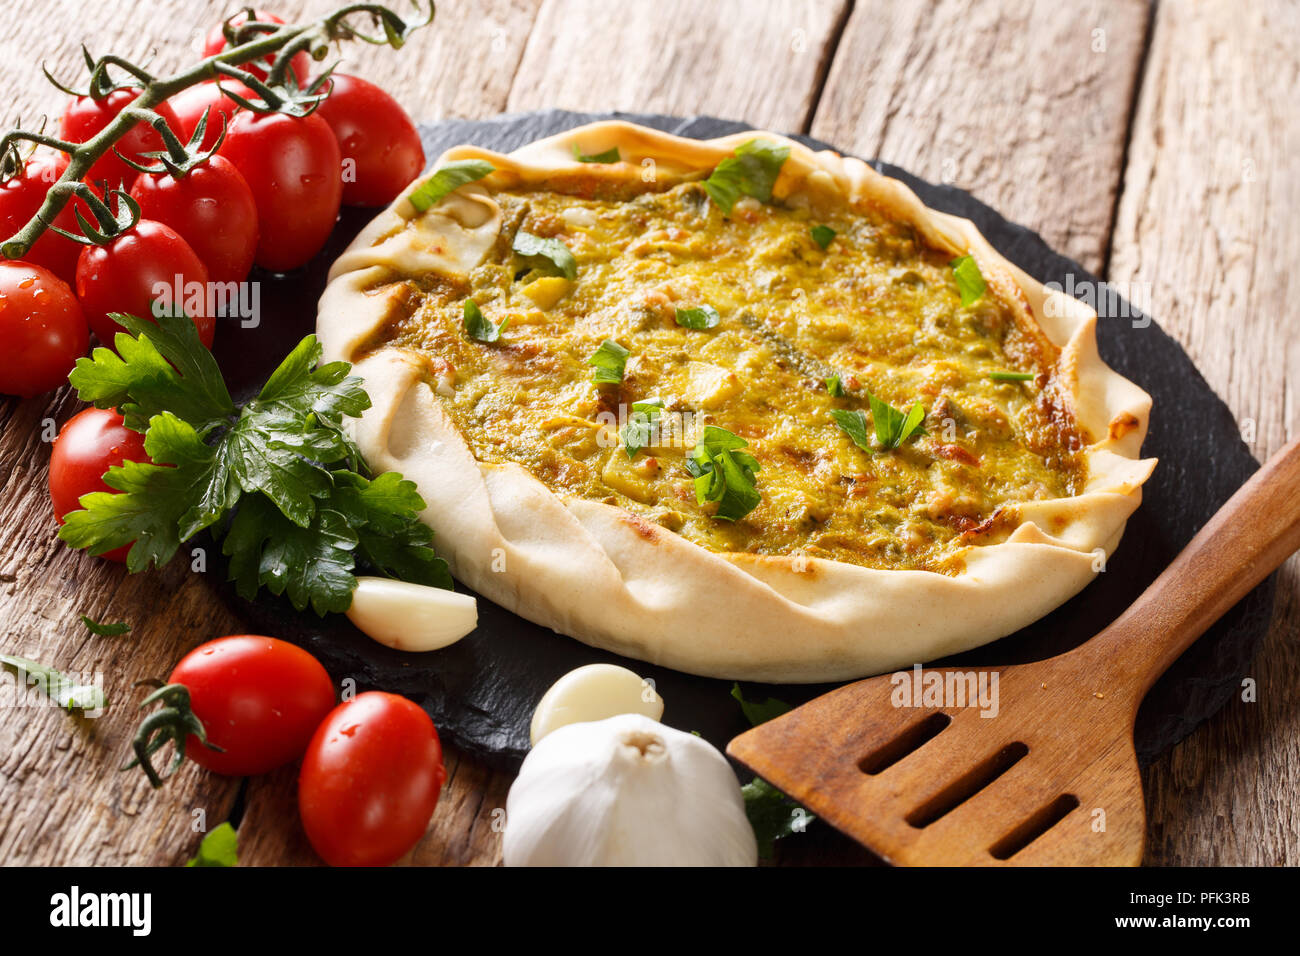 Spicy potato savory tart with vegetables and herbs close up on the table and ingredients. horizontal - Stock Image